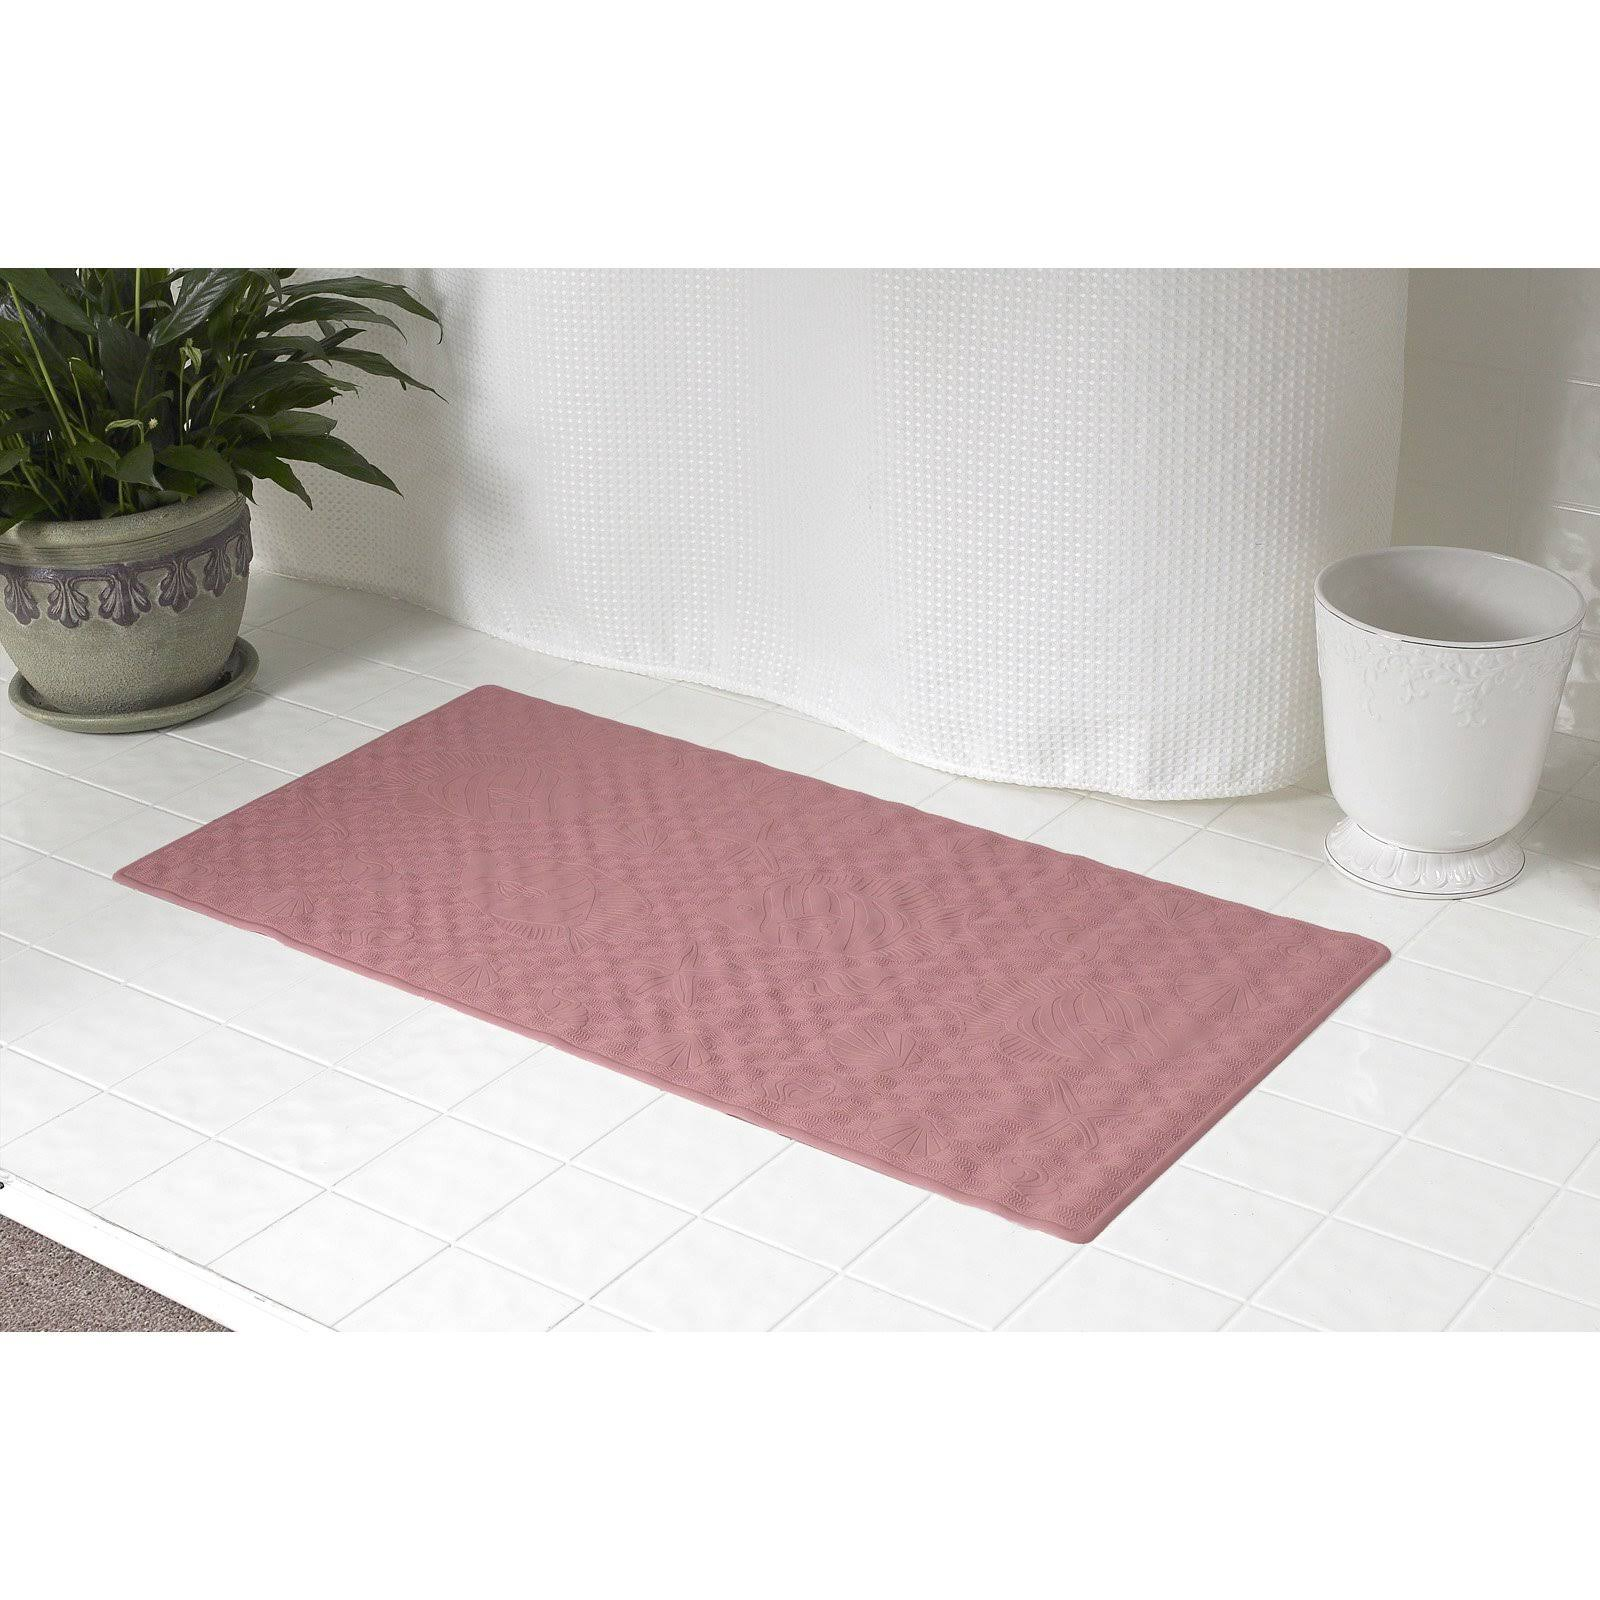 Carnation Home Fashions Rubber Bath Tub Mat, Rose